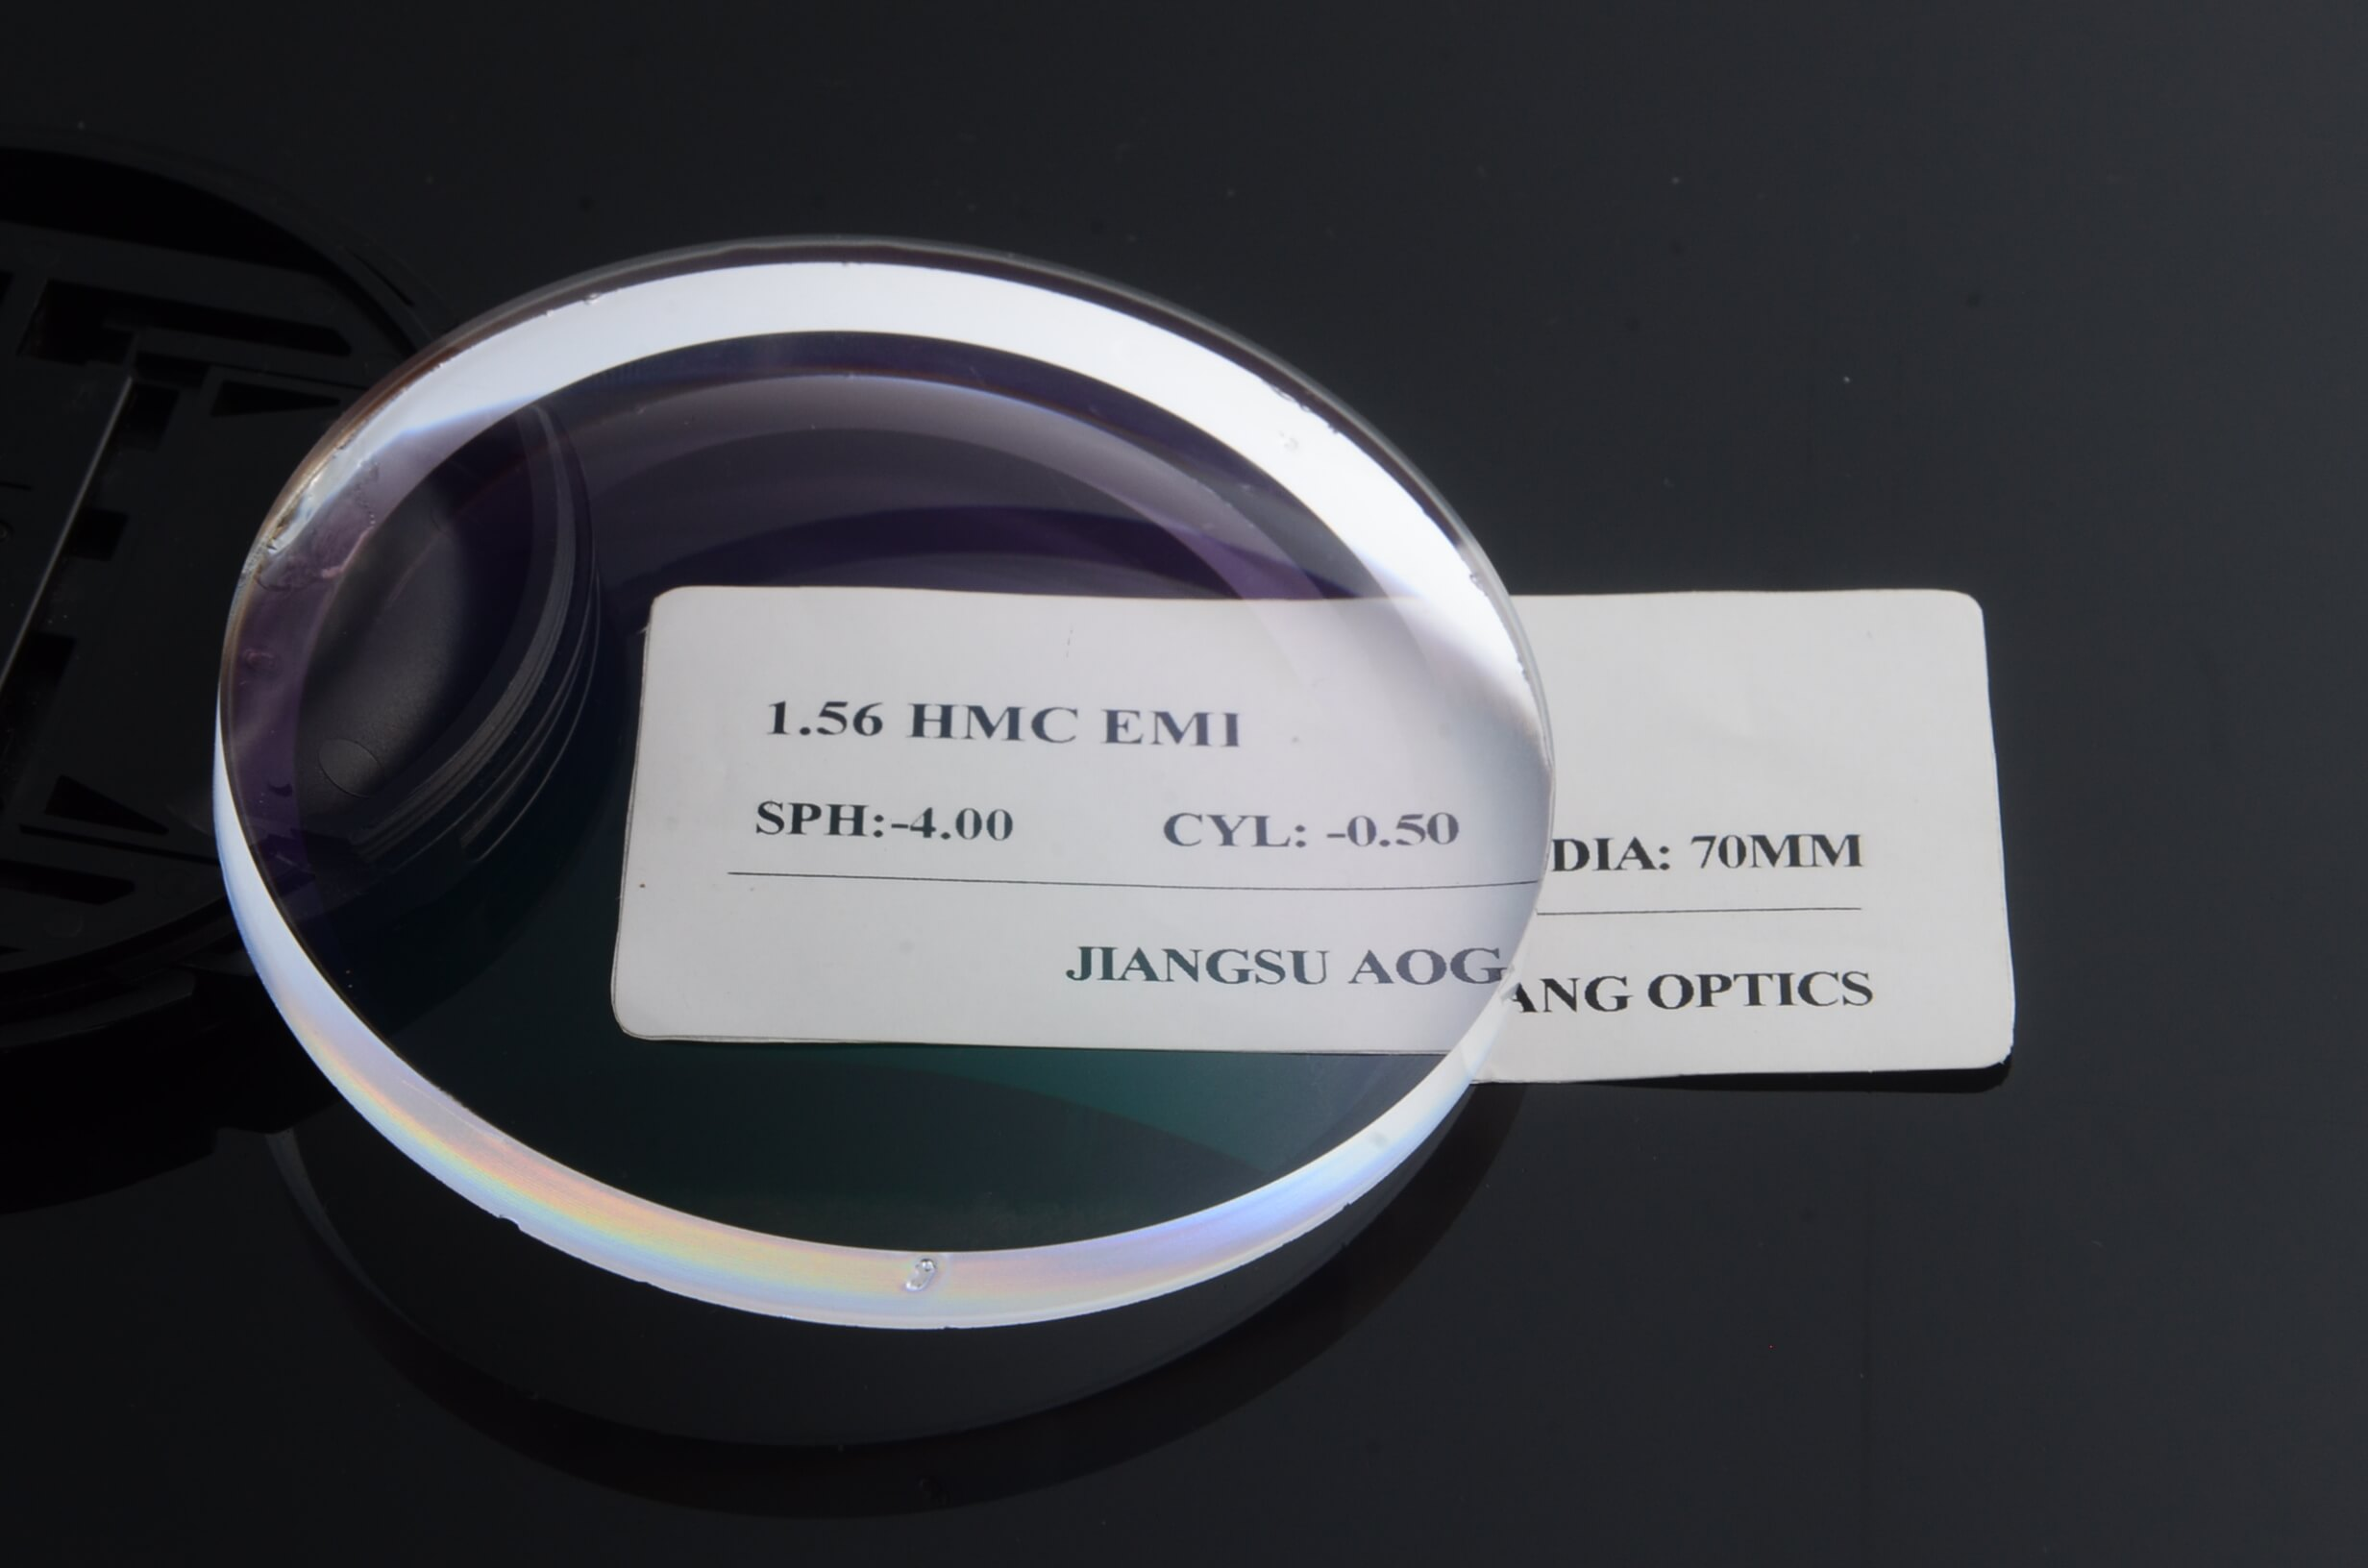 Eyeglass Single Vision 1.56 Index Lenses , 65/72mm Diameter 1.56 HMC Lenses